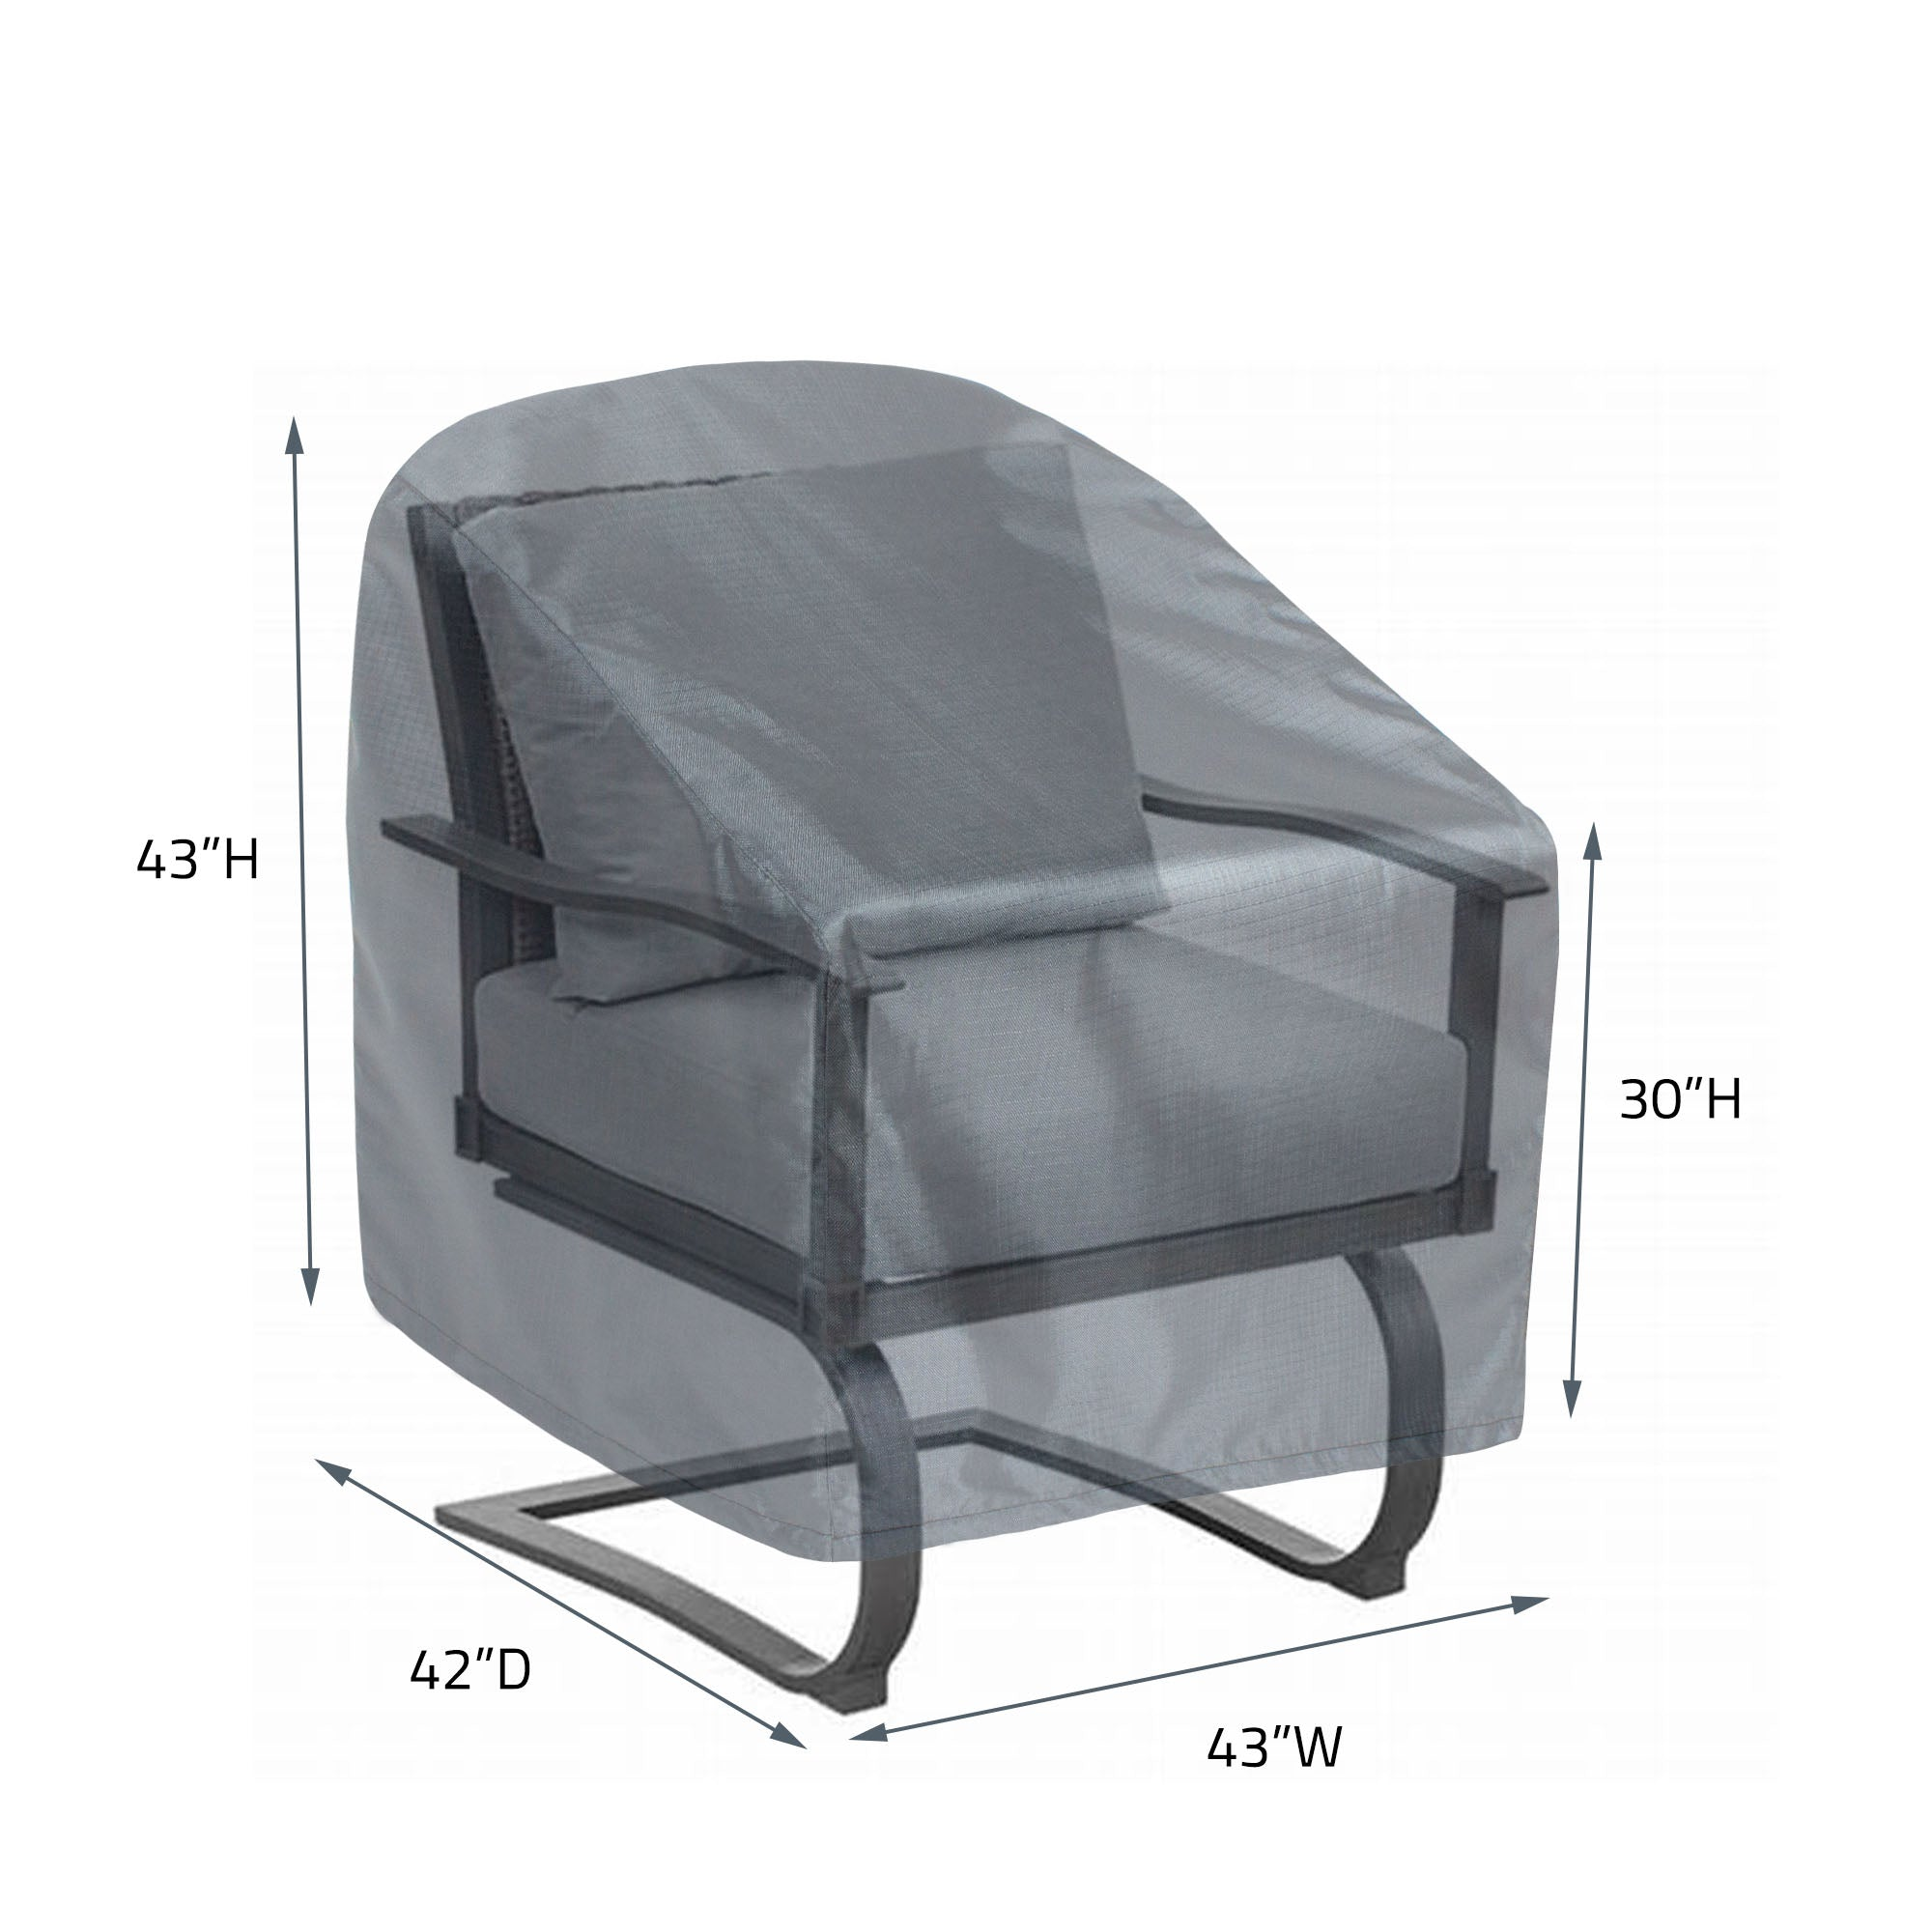 COV-M241 Premium Mercury Cover XL Lounge Chair